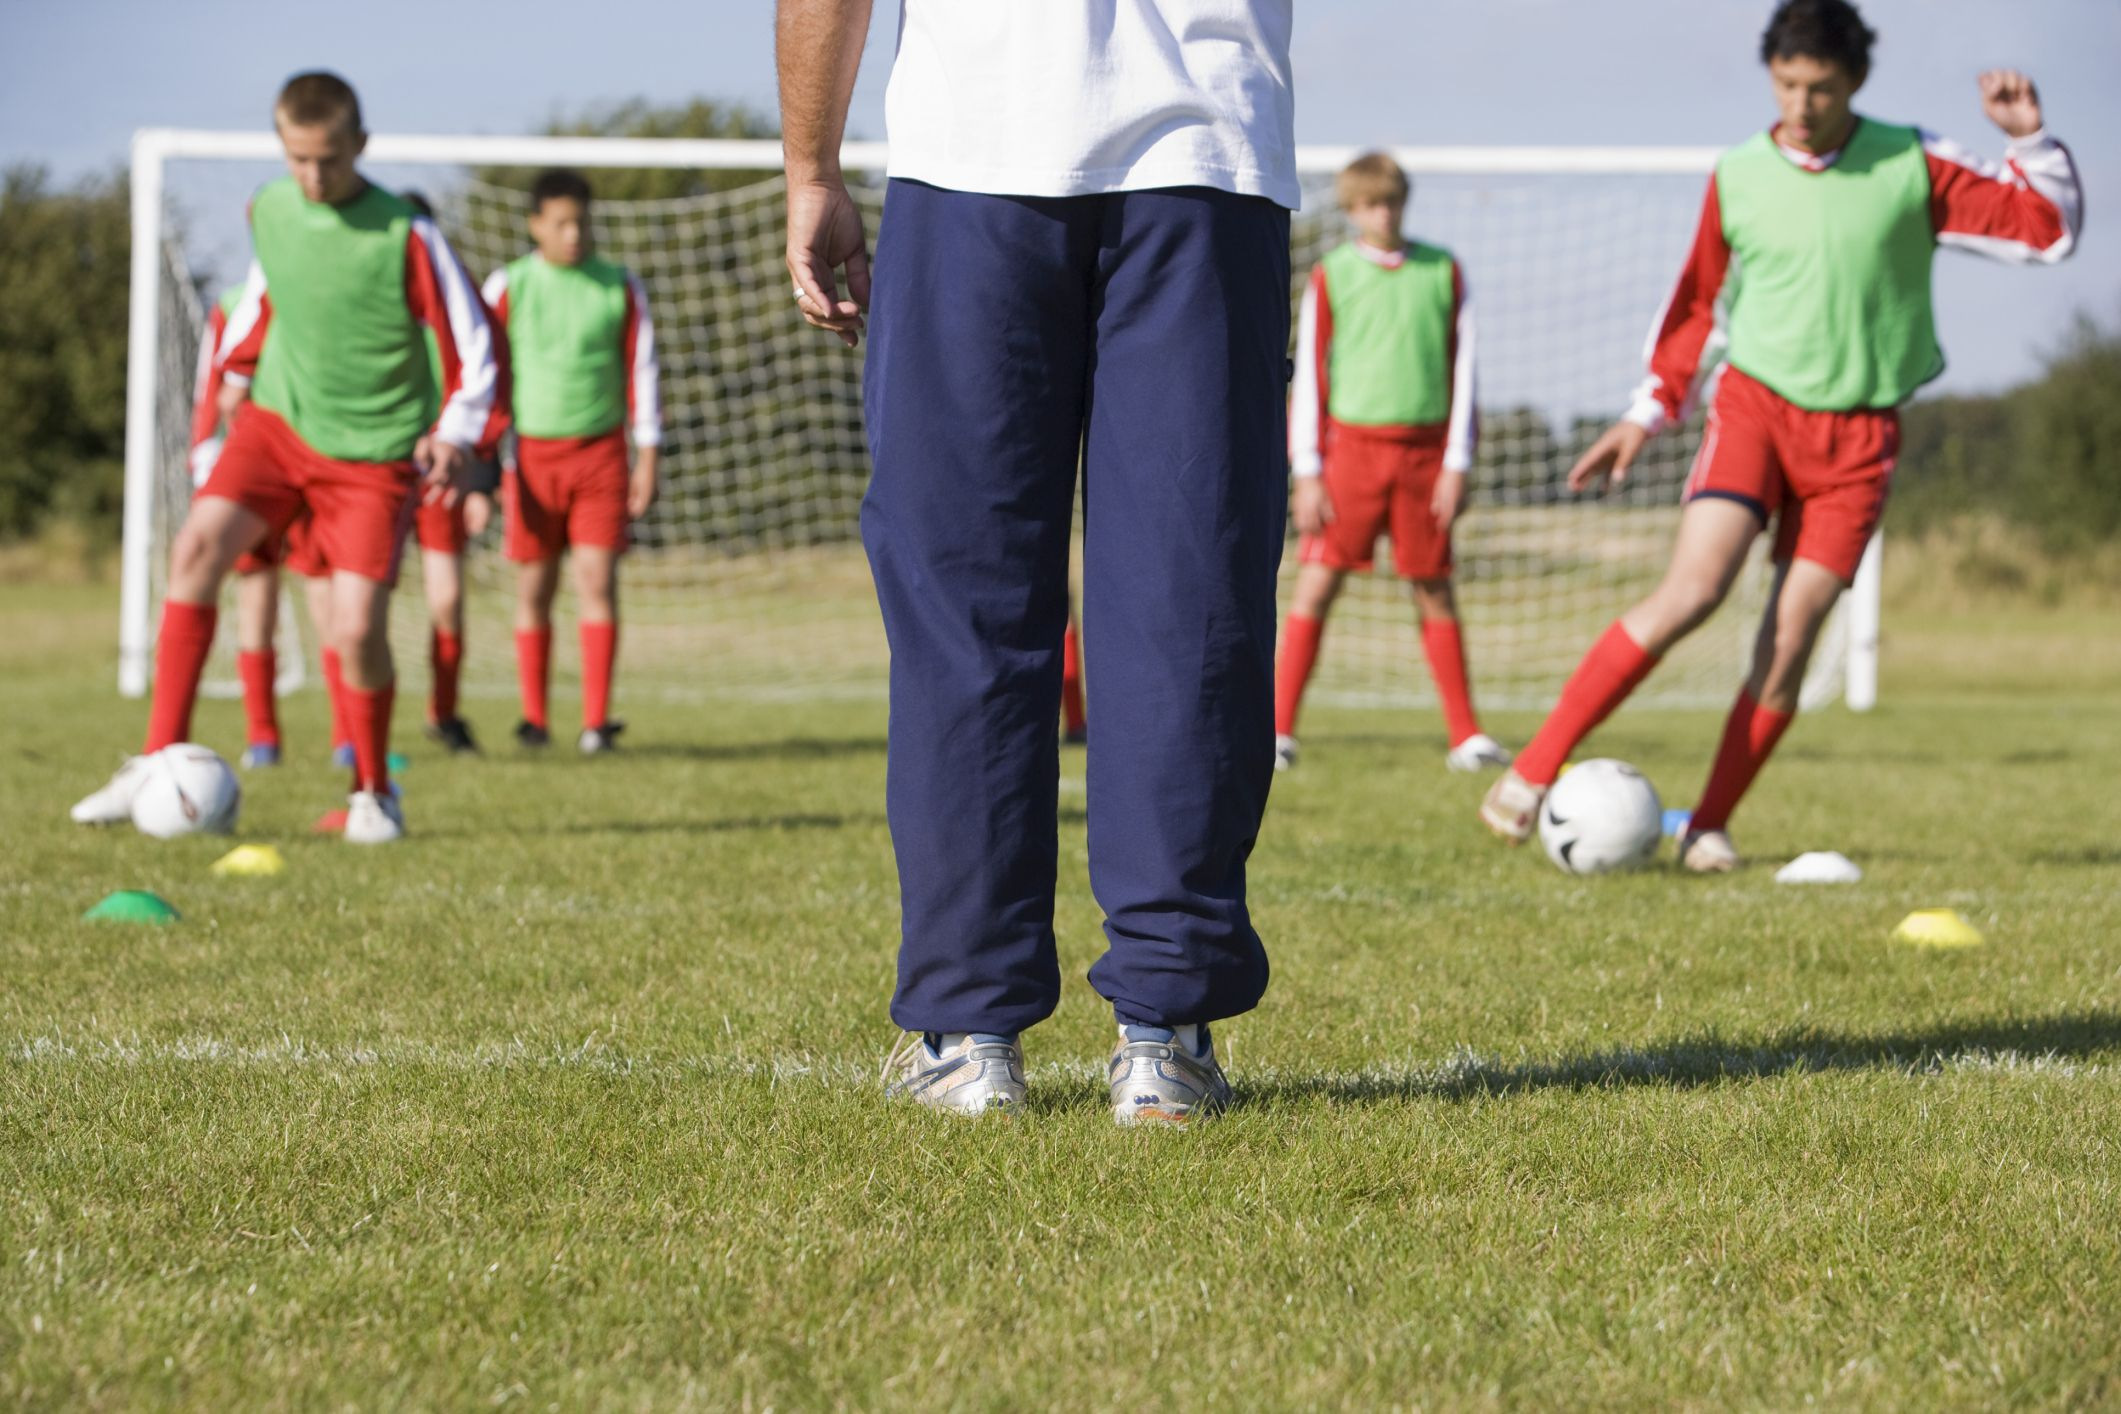 How to be a soccer coach